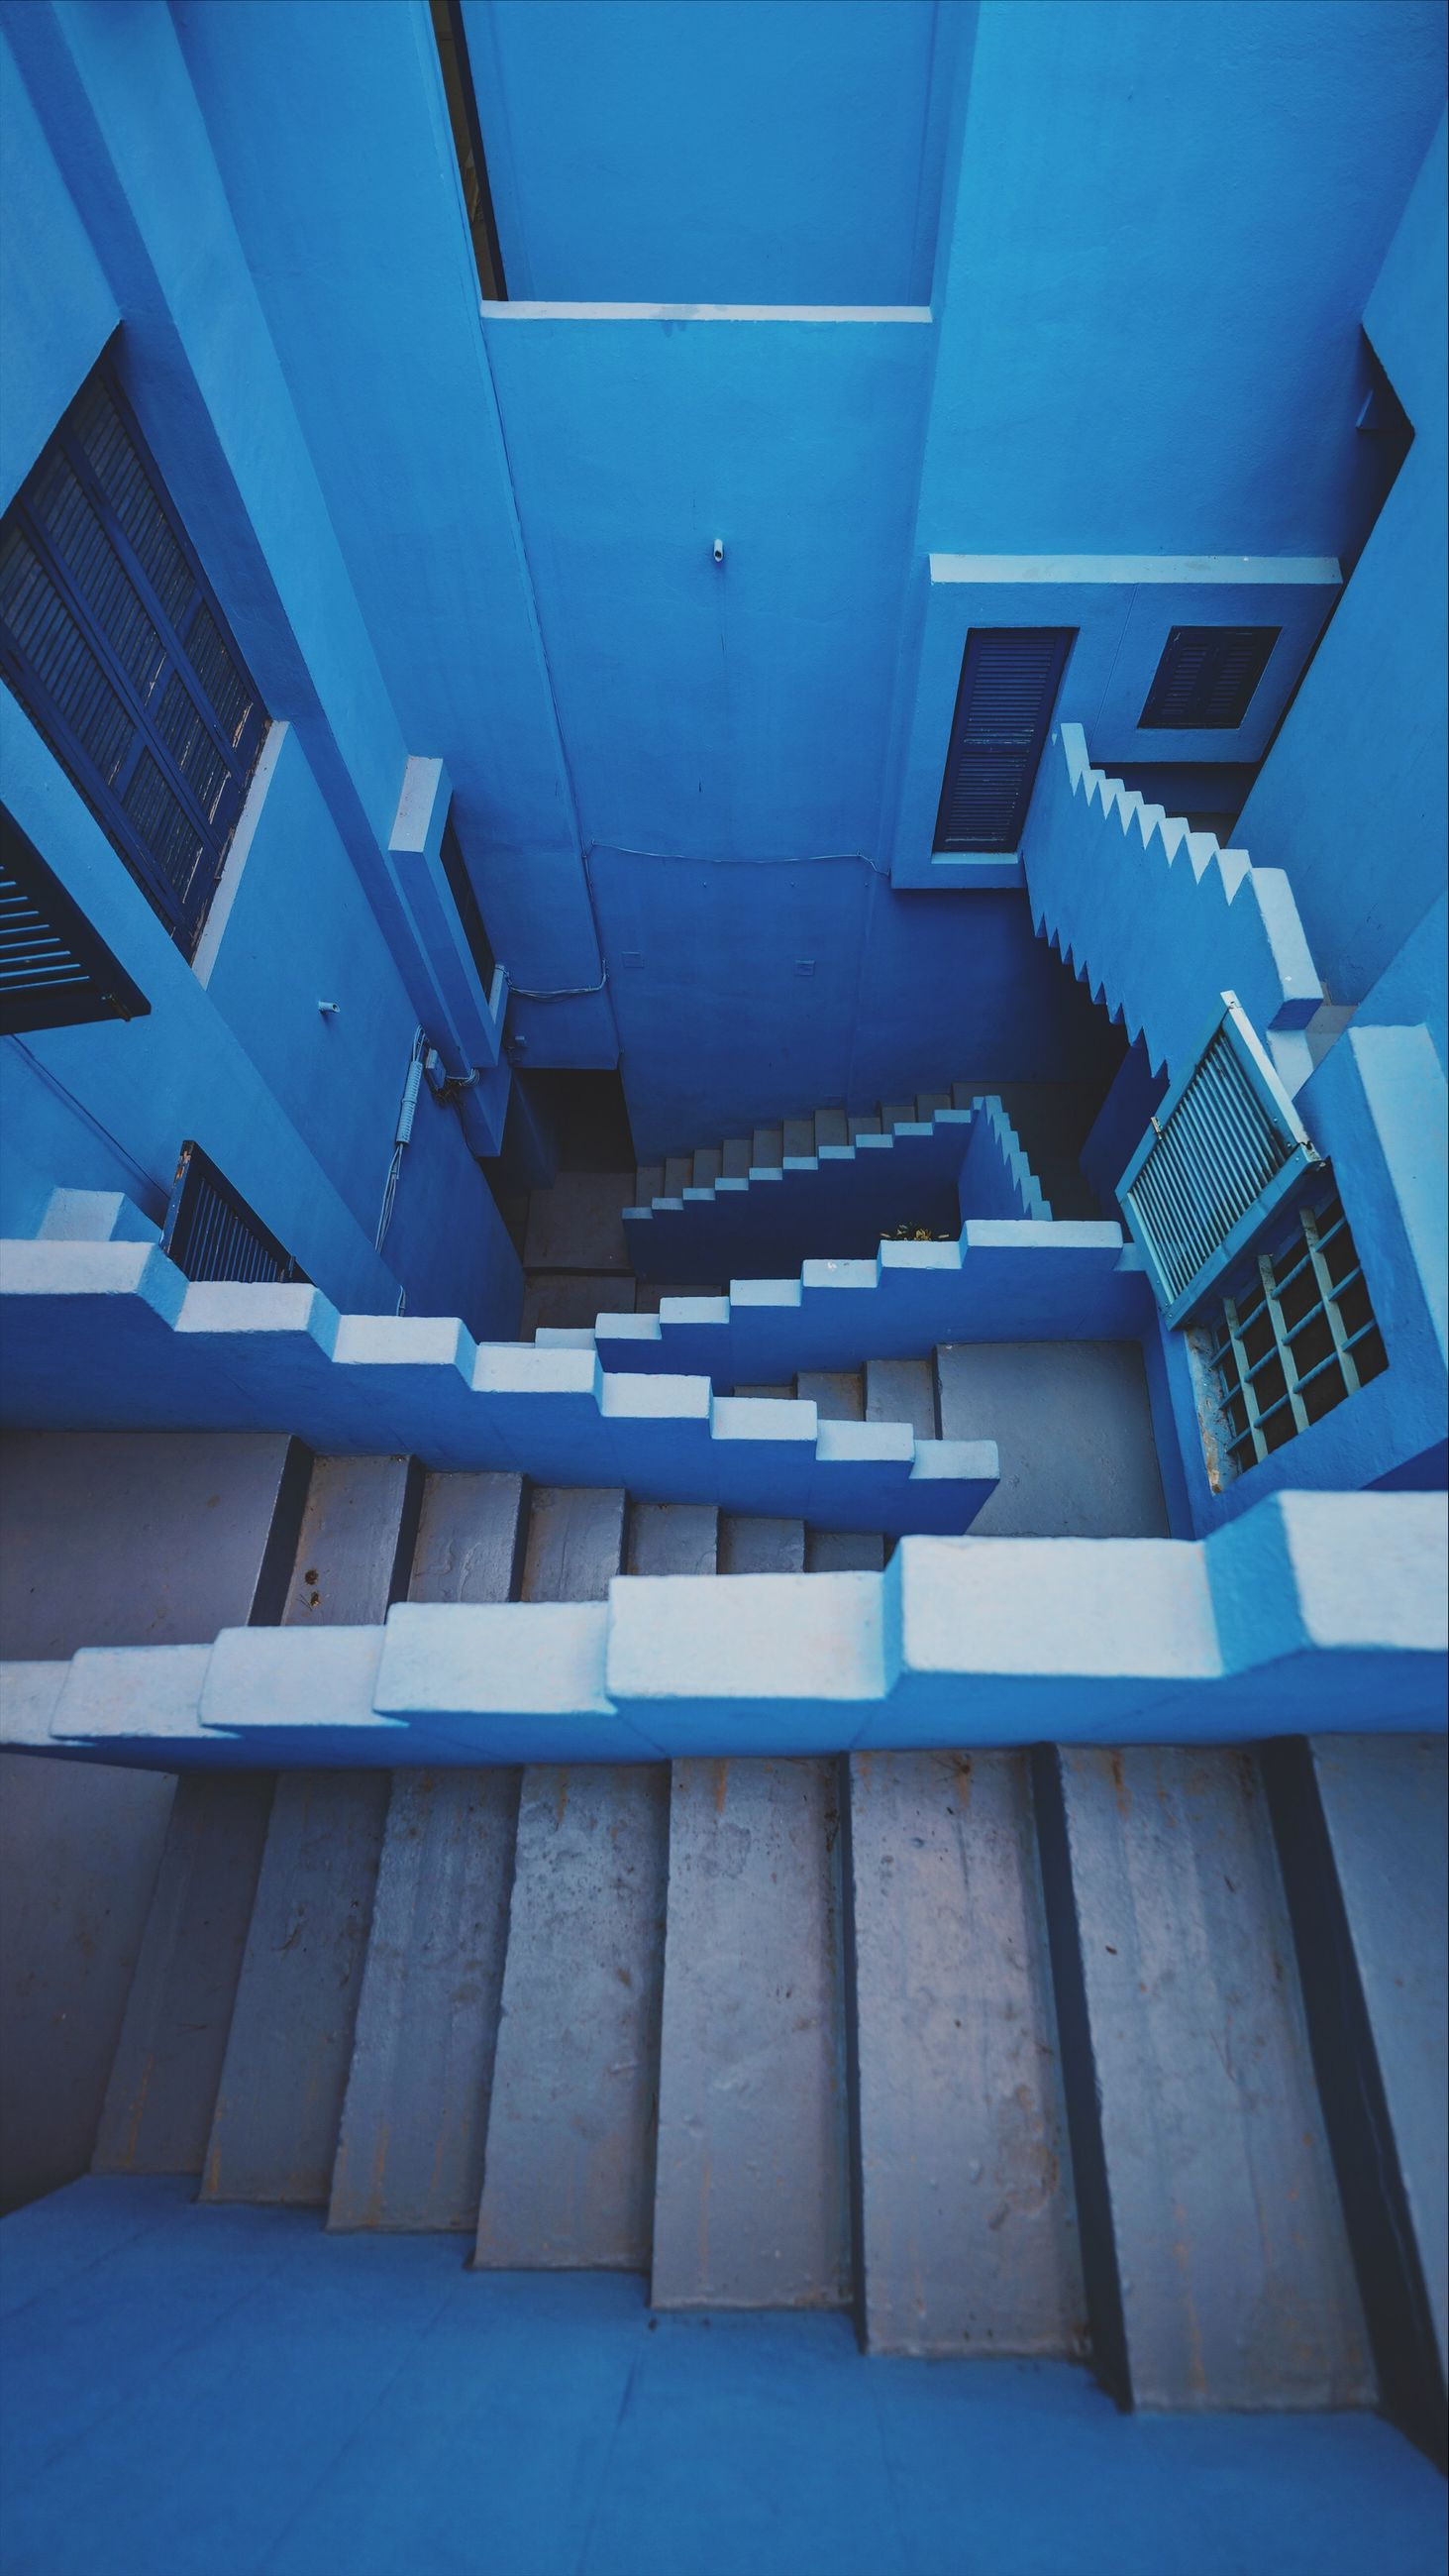 architecture, built structure, building, no people, staircase, steps and staircases, indoors, day, railing, blue, low angle view, empty, pattern, absence, residential district, nature, window, ceiling